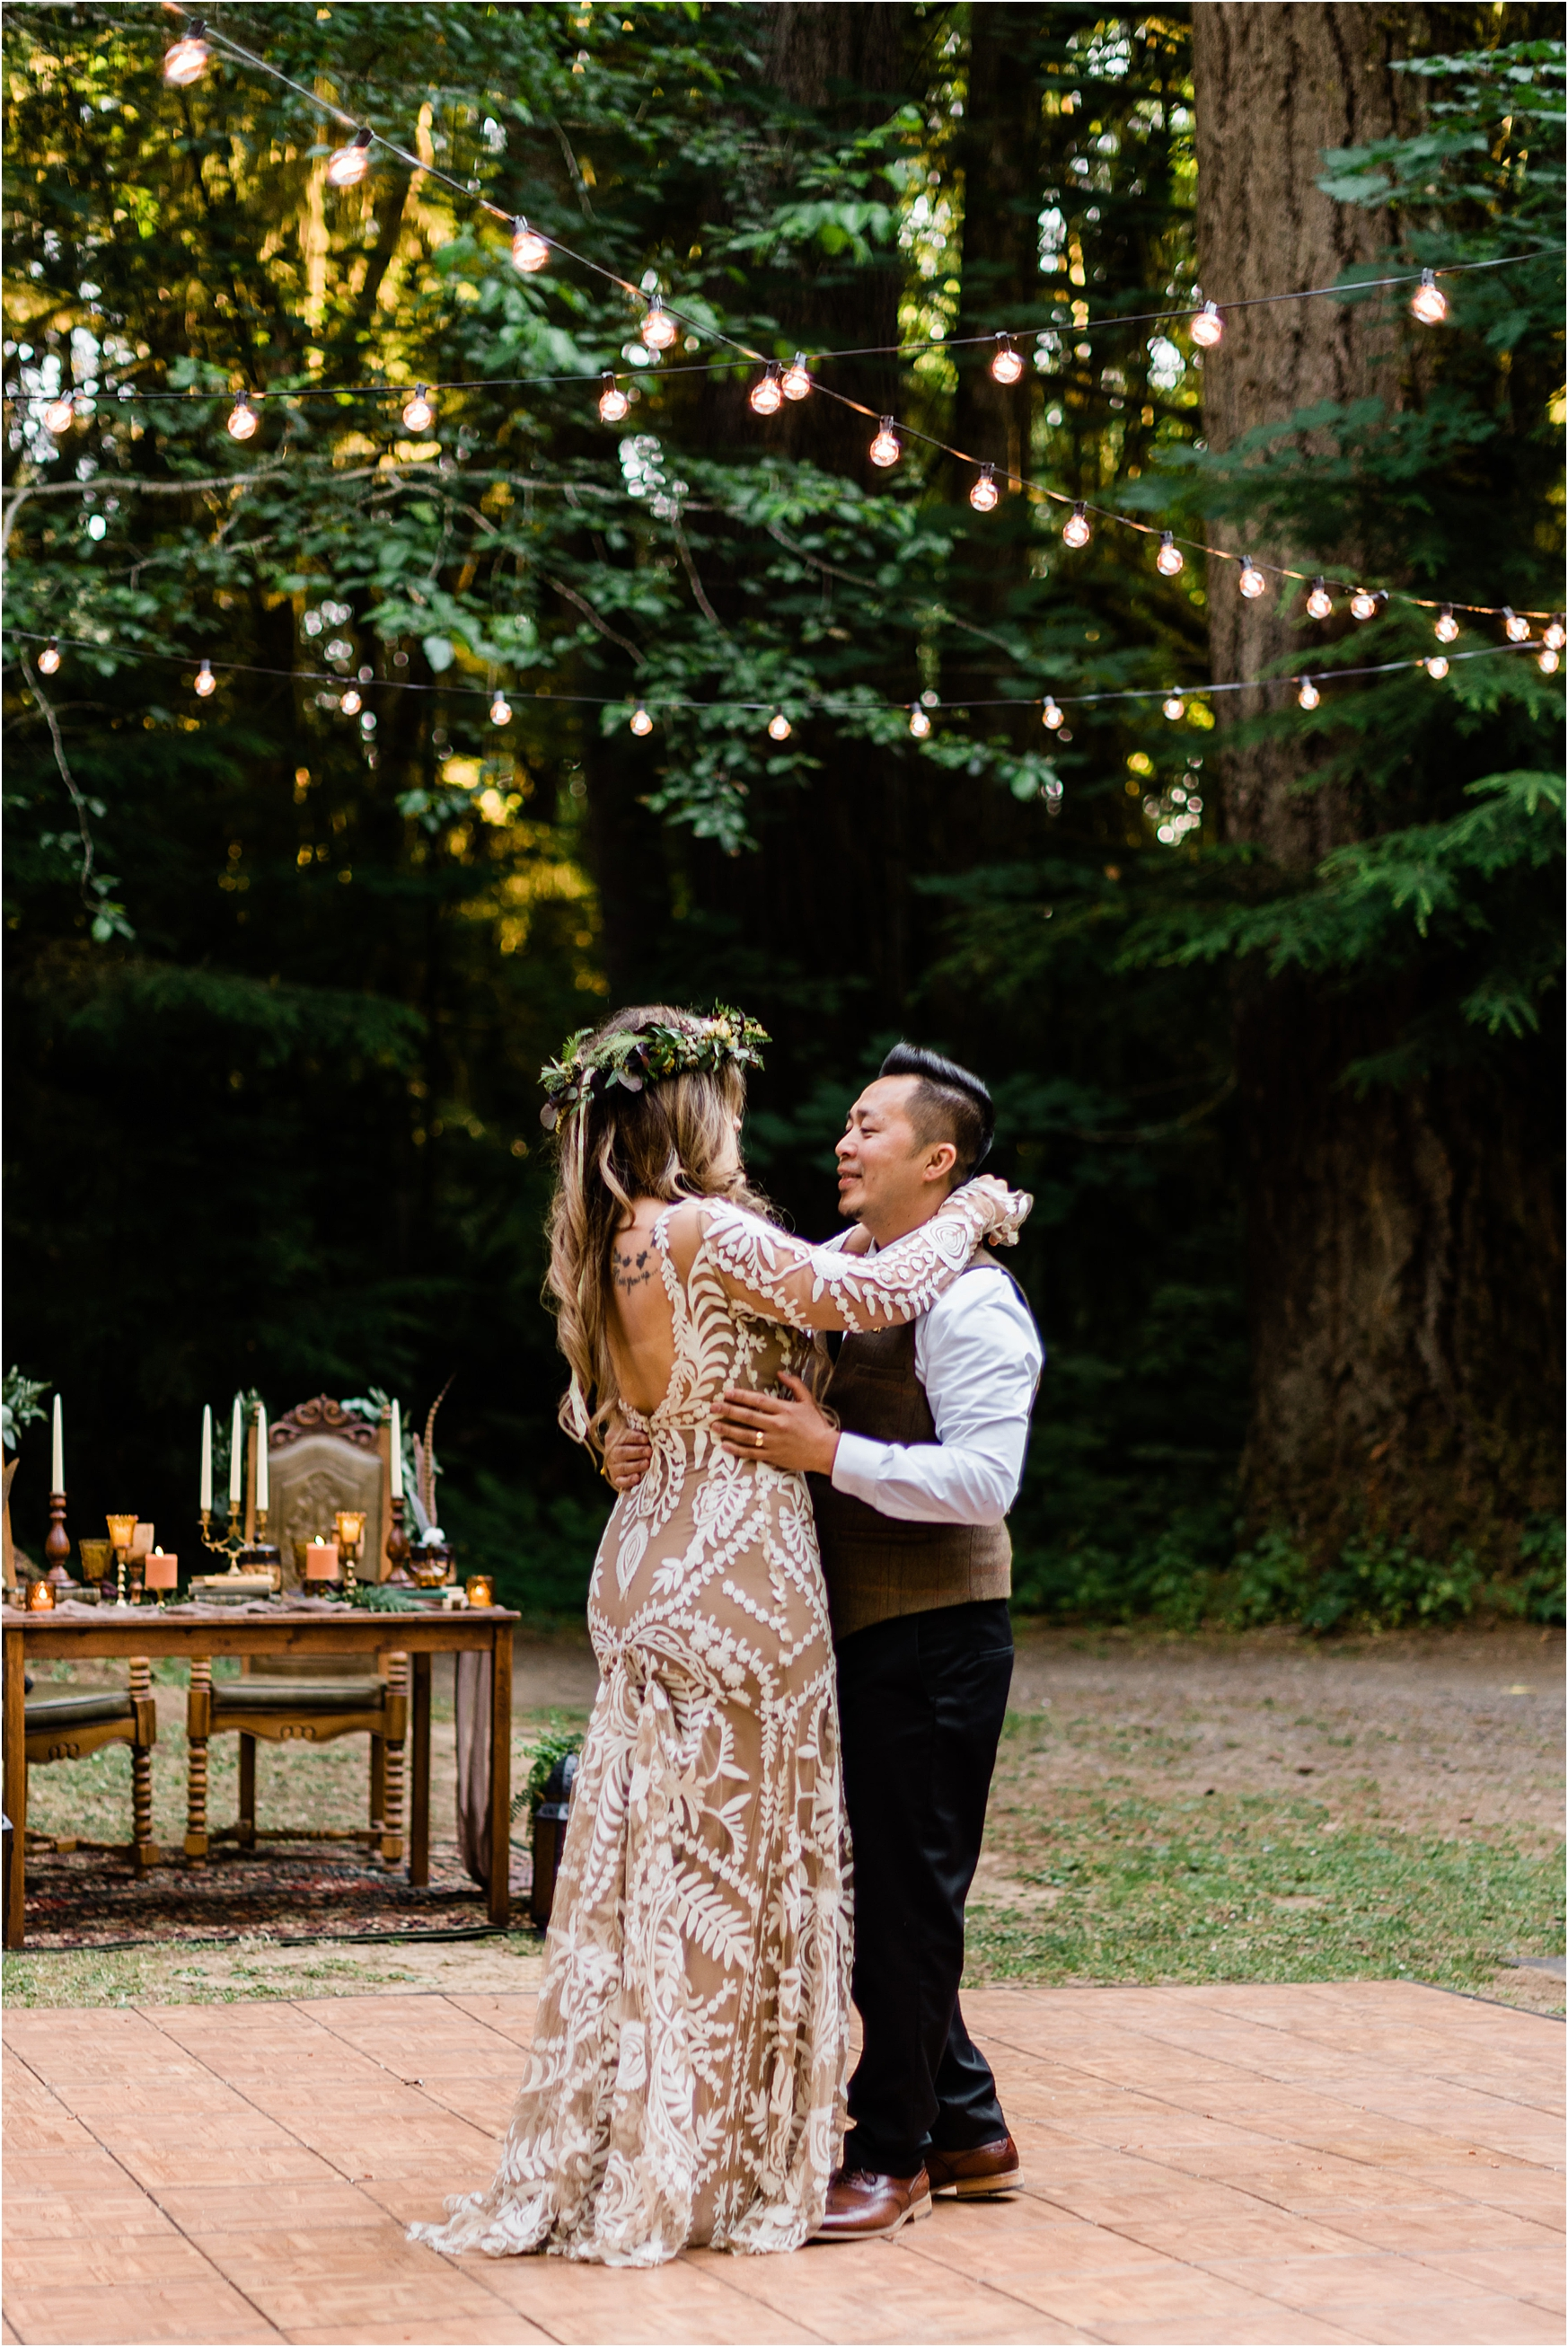 First dance at Cassy & Viva's bohemian Oregon destination wedding at Camp Lane. Image by Forthright Photo.